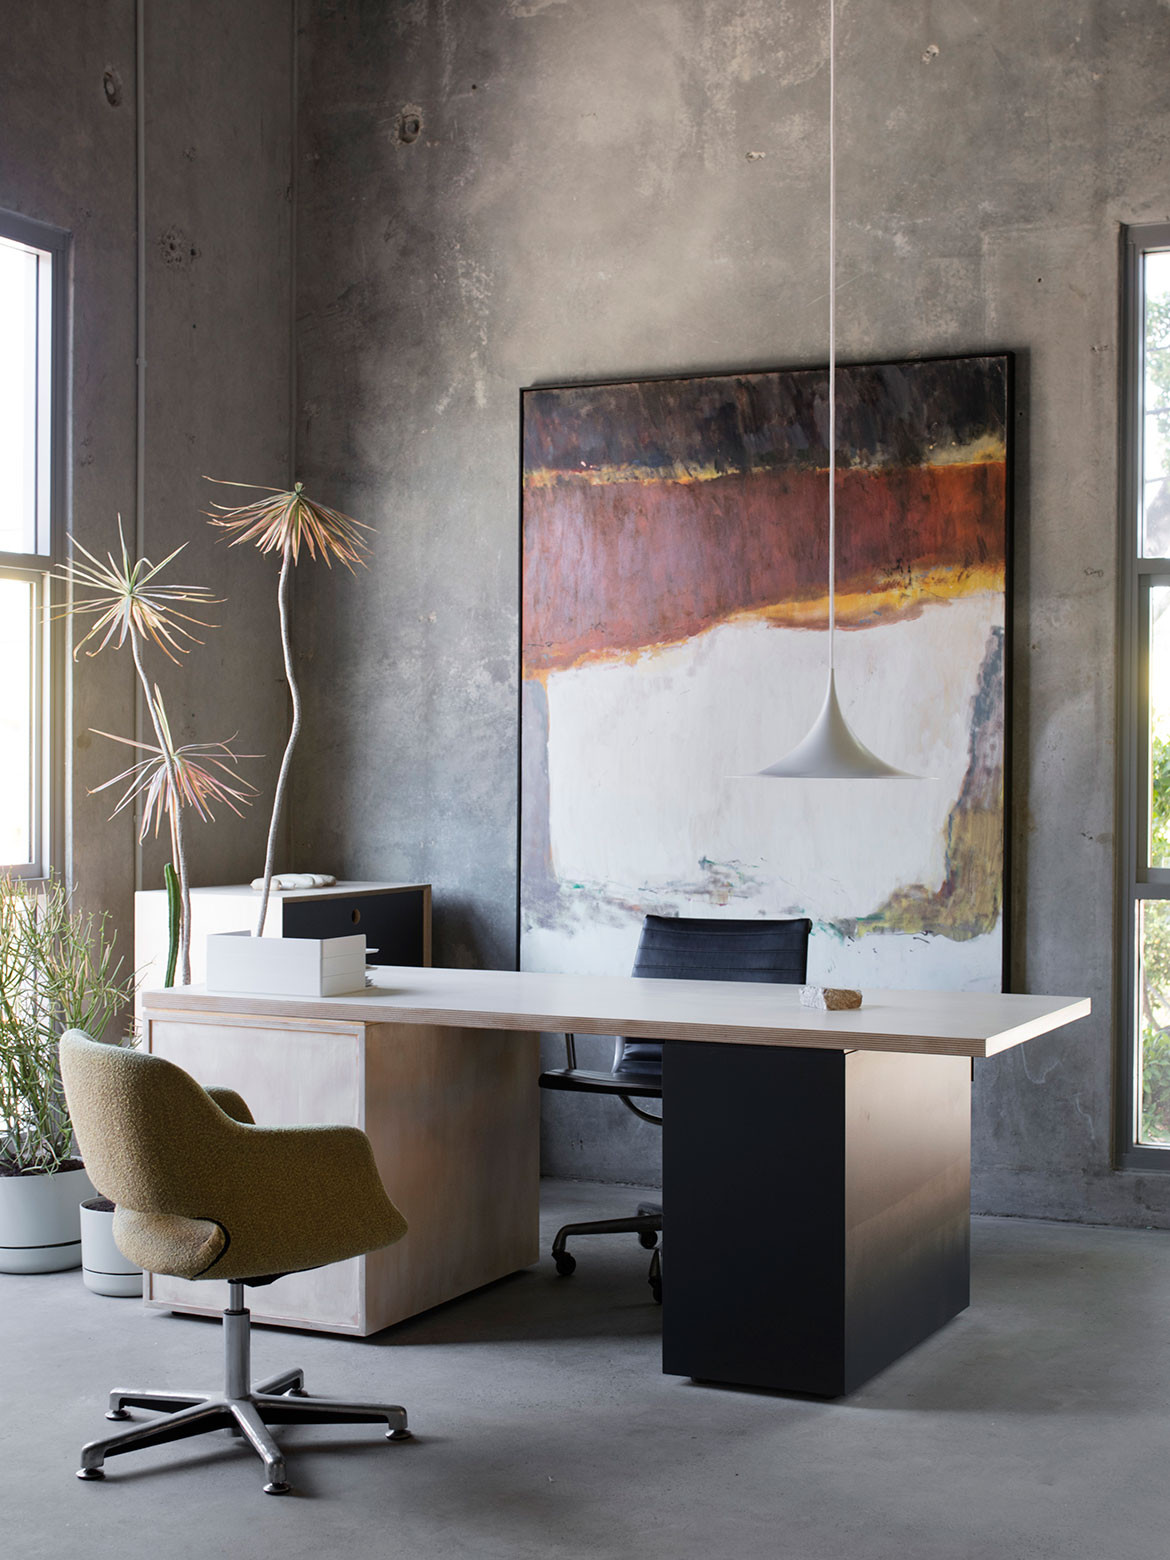 Rendered concrete walls give this Marrickville Warehouse conversion by Adele McNab a minimalist, industrial aesthetic.